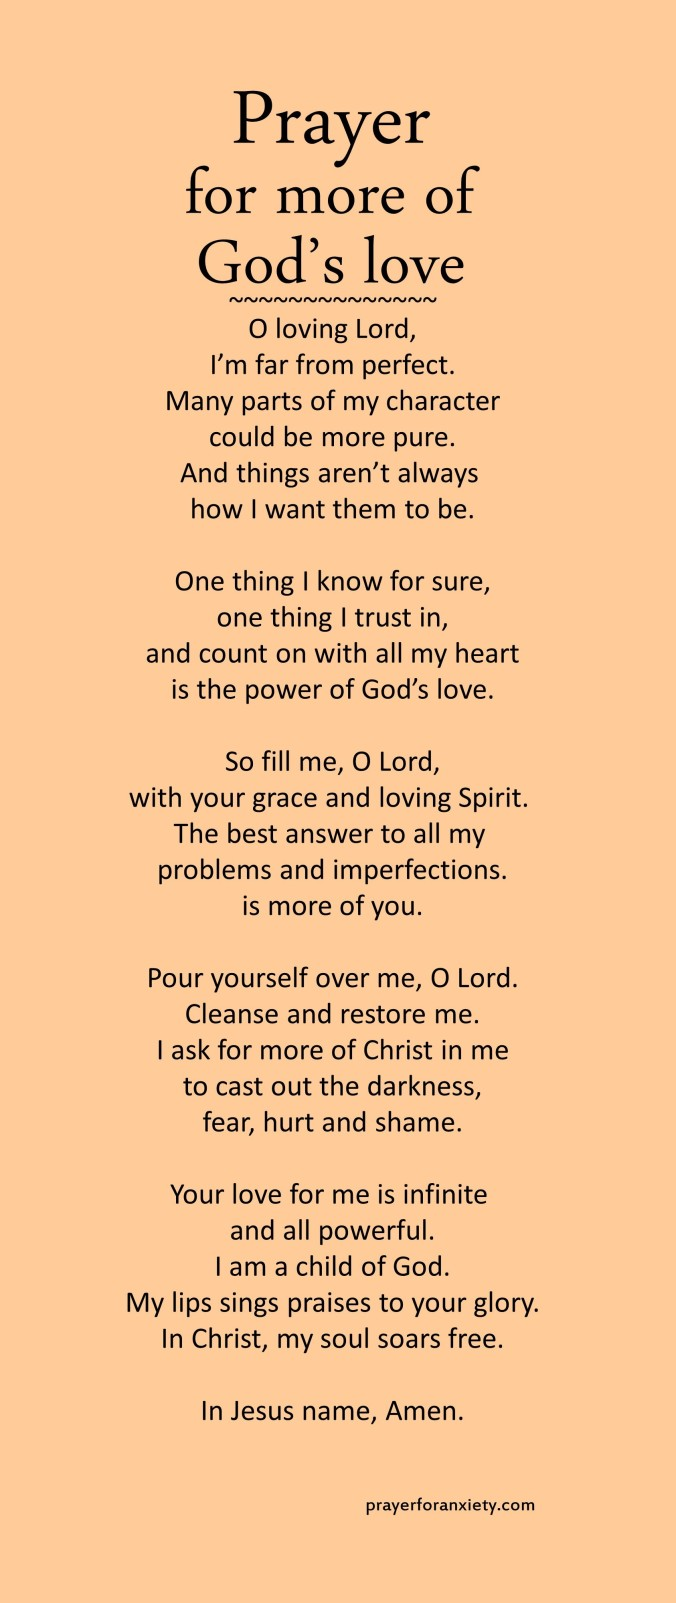 Prayer for more of God's love